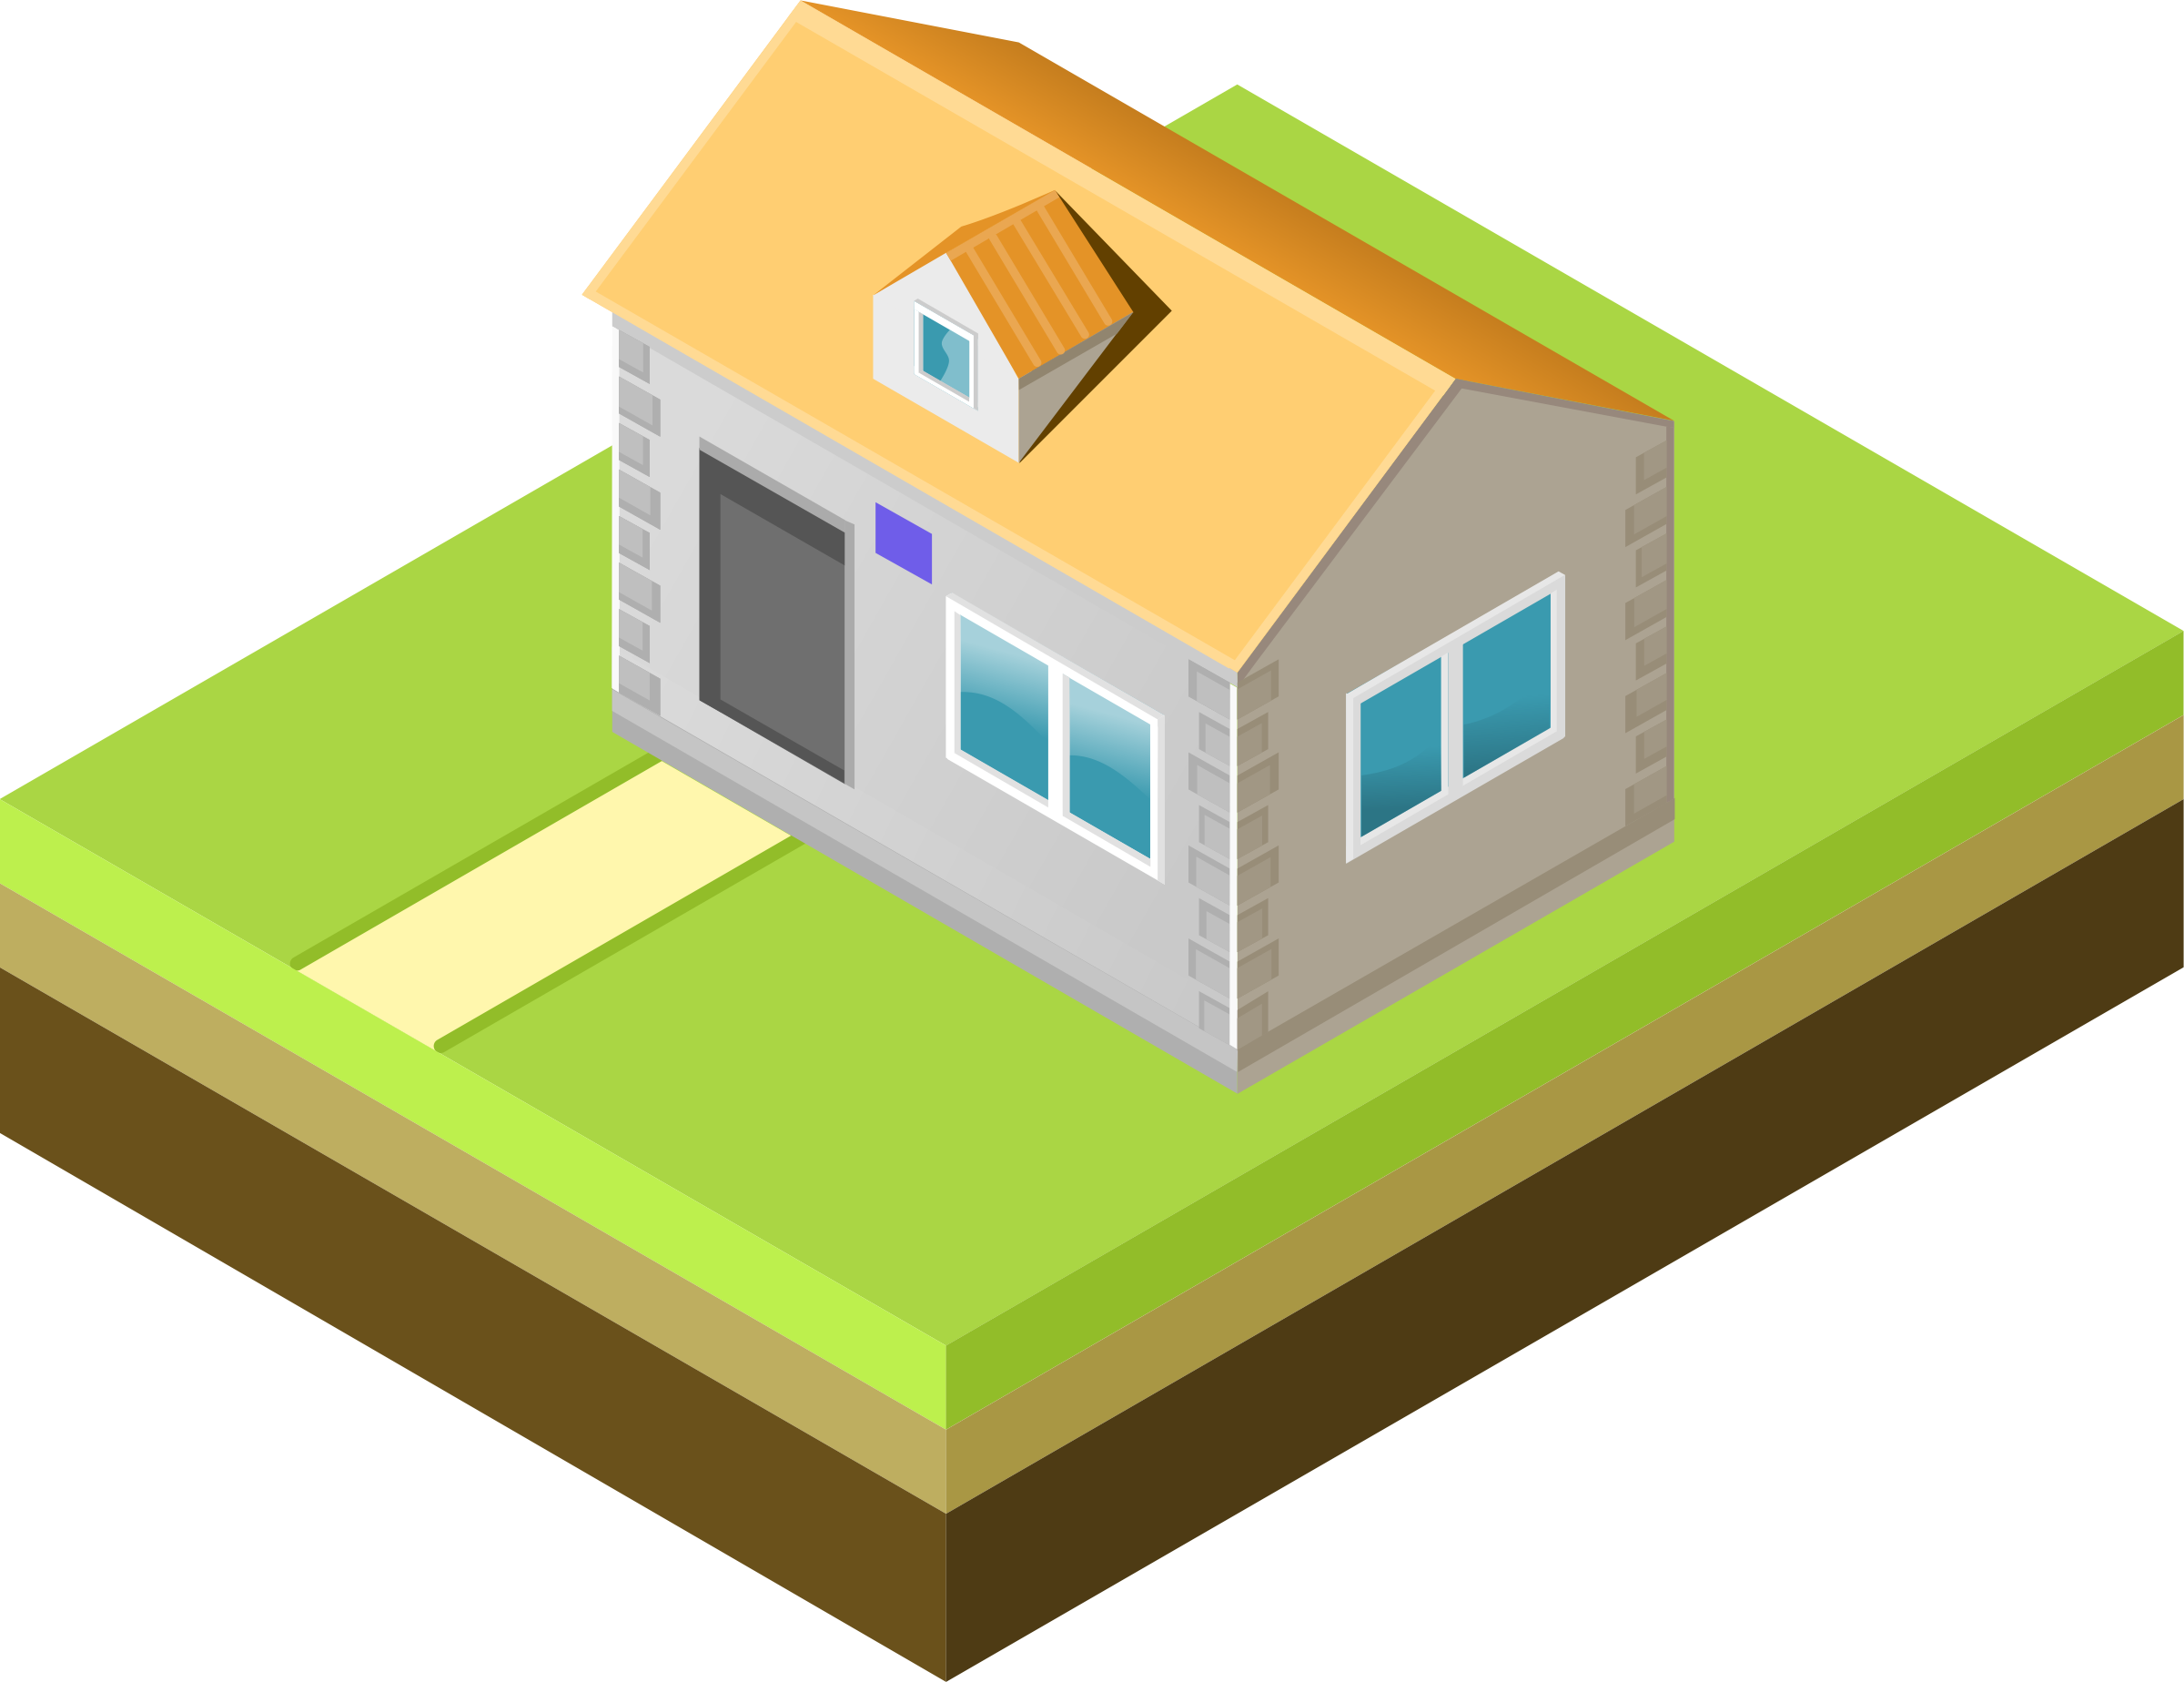 Cottage clipart house lot. Isometric big image png